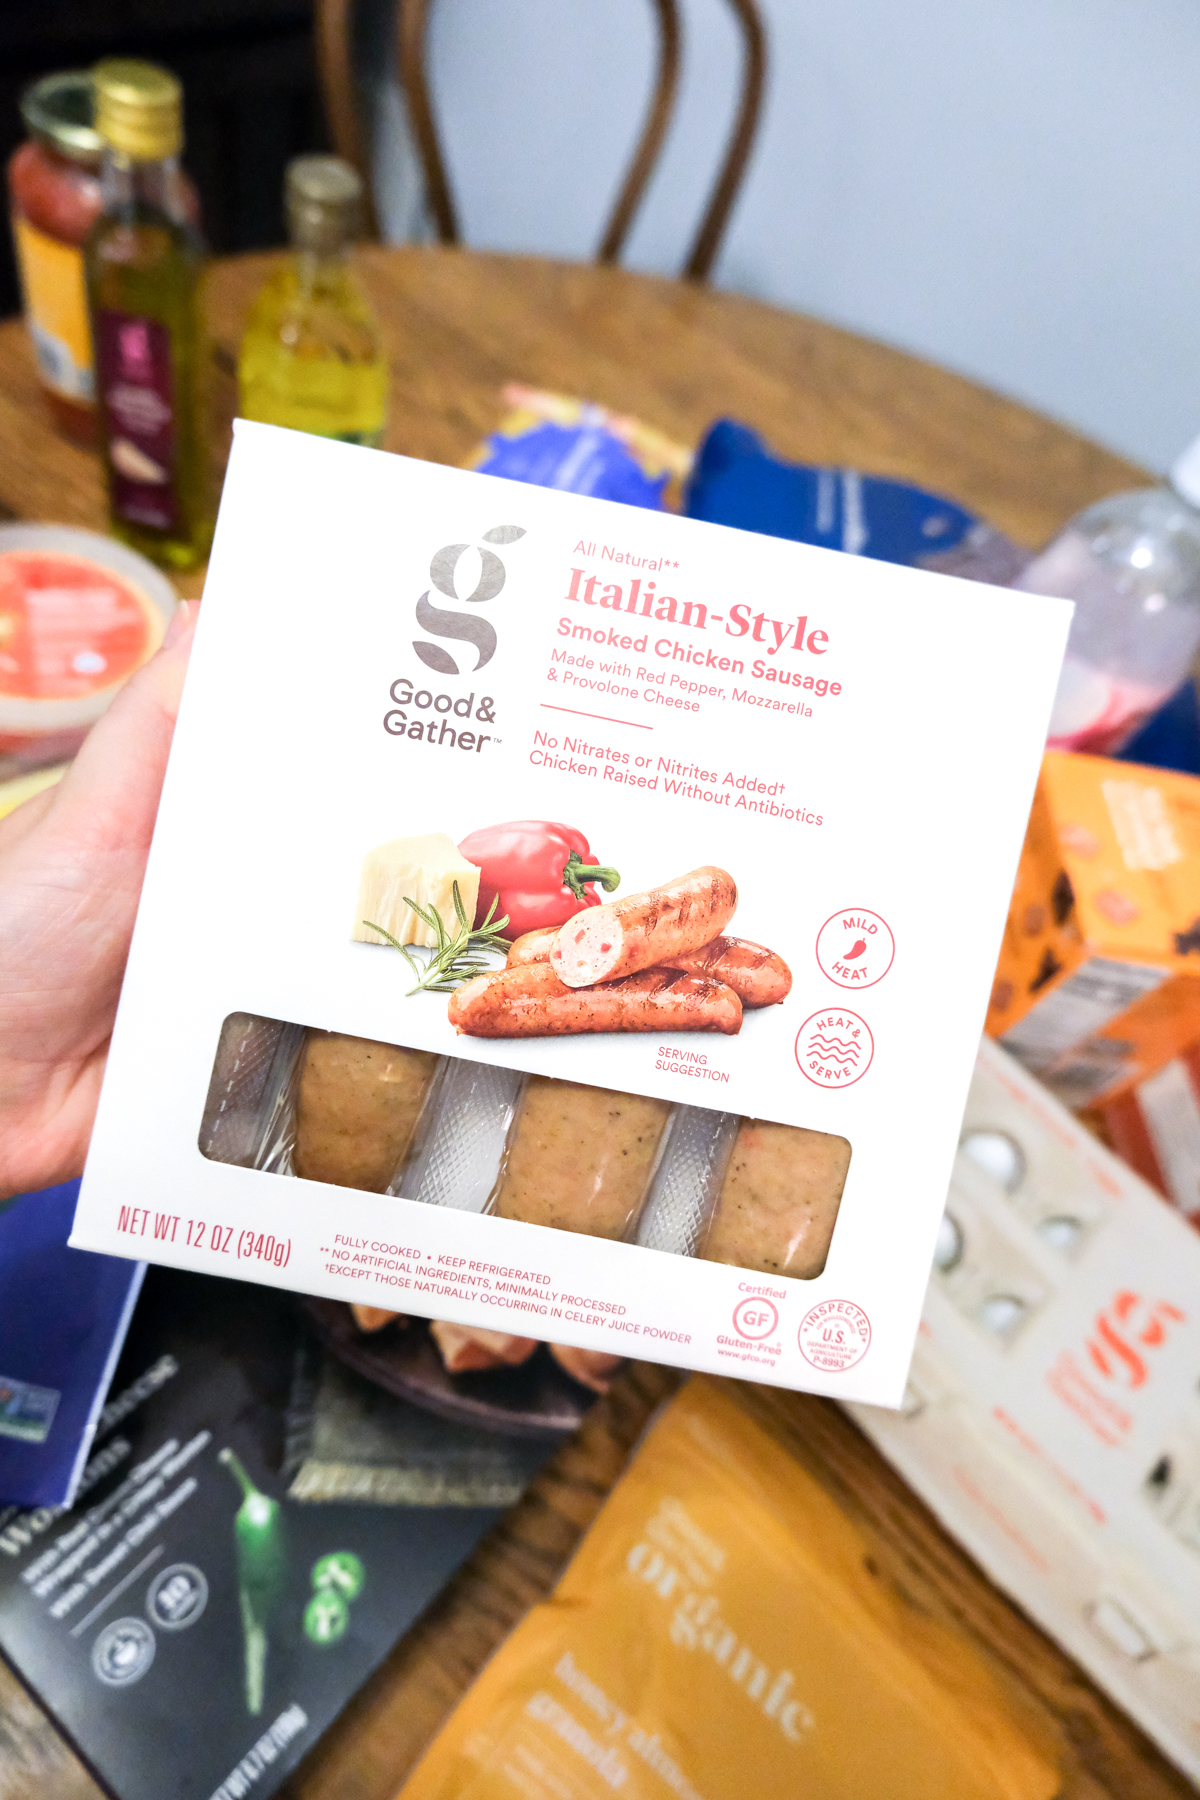 Italian-style chicken sausage Good & Gather at Target